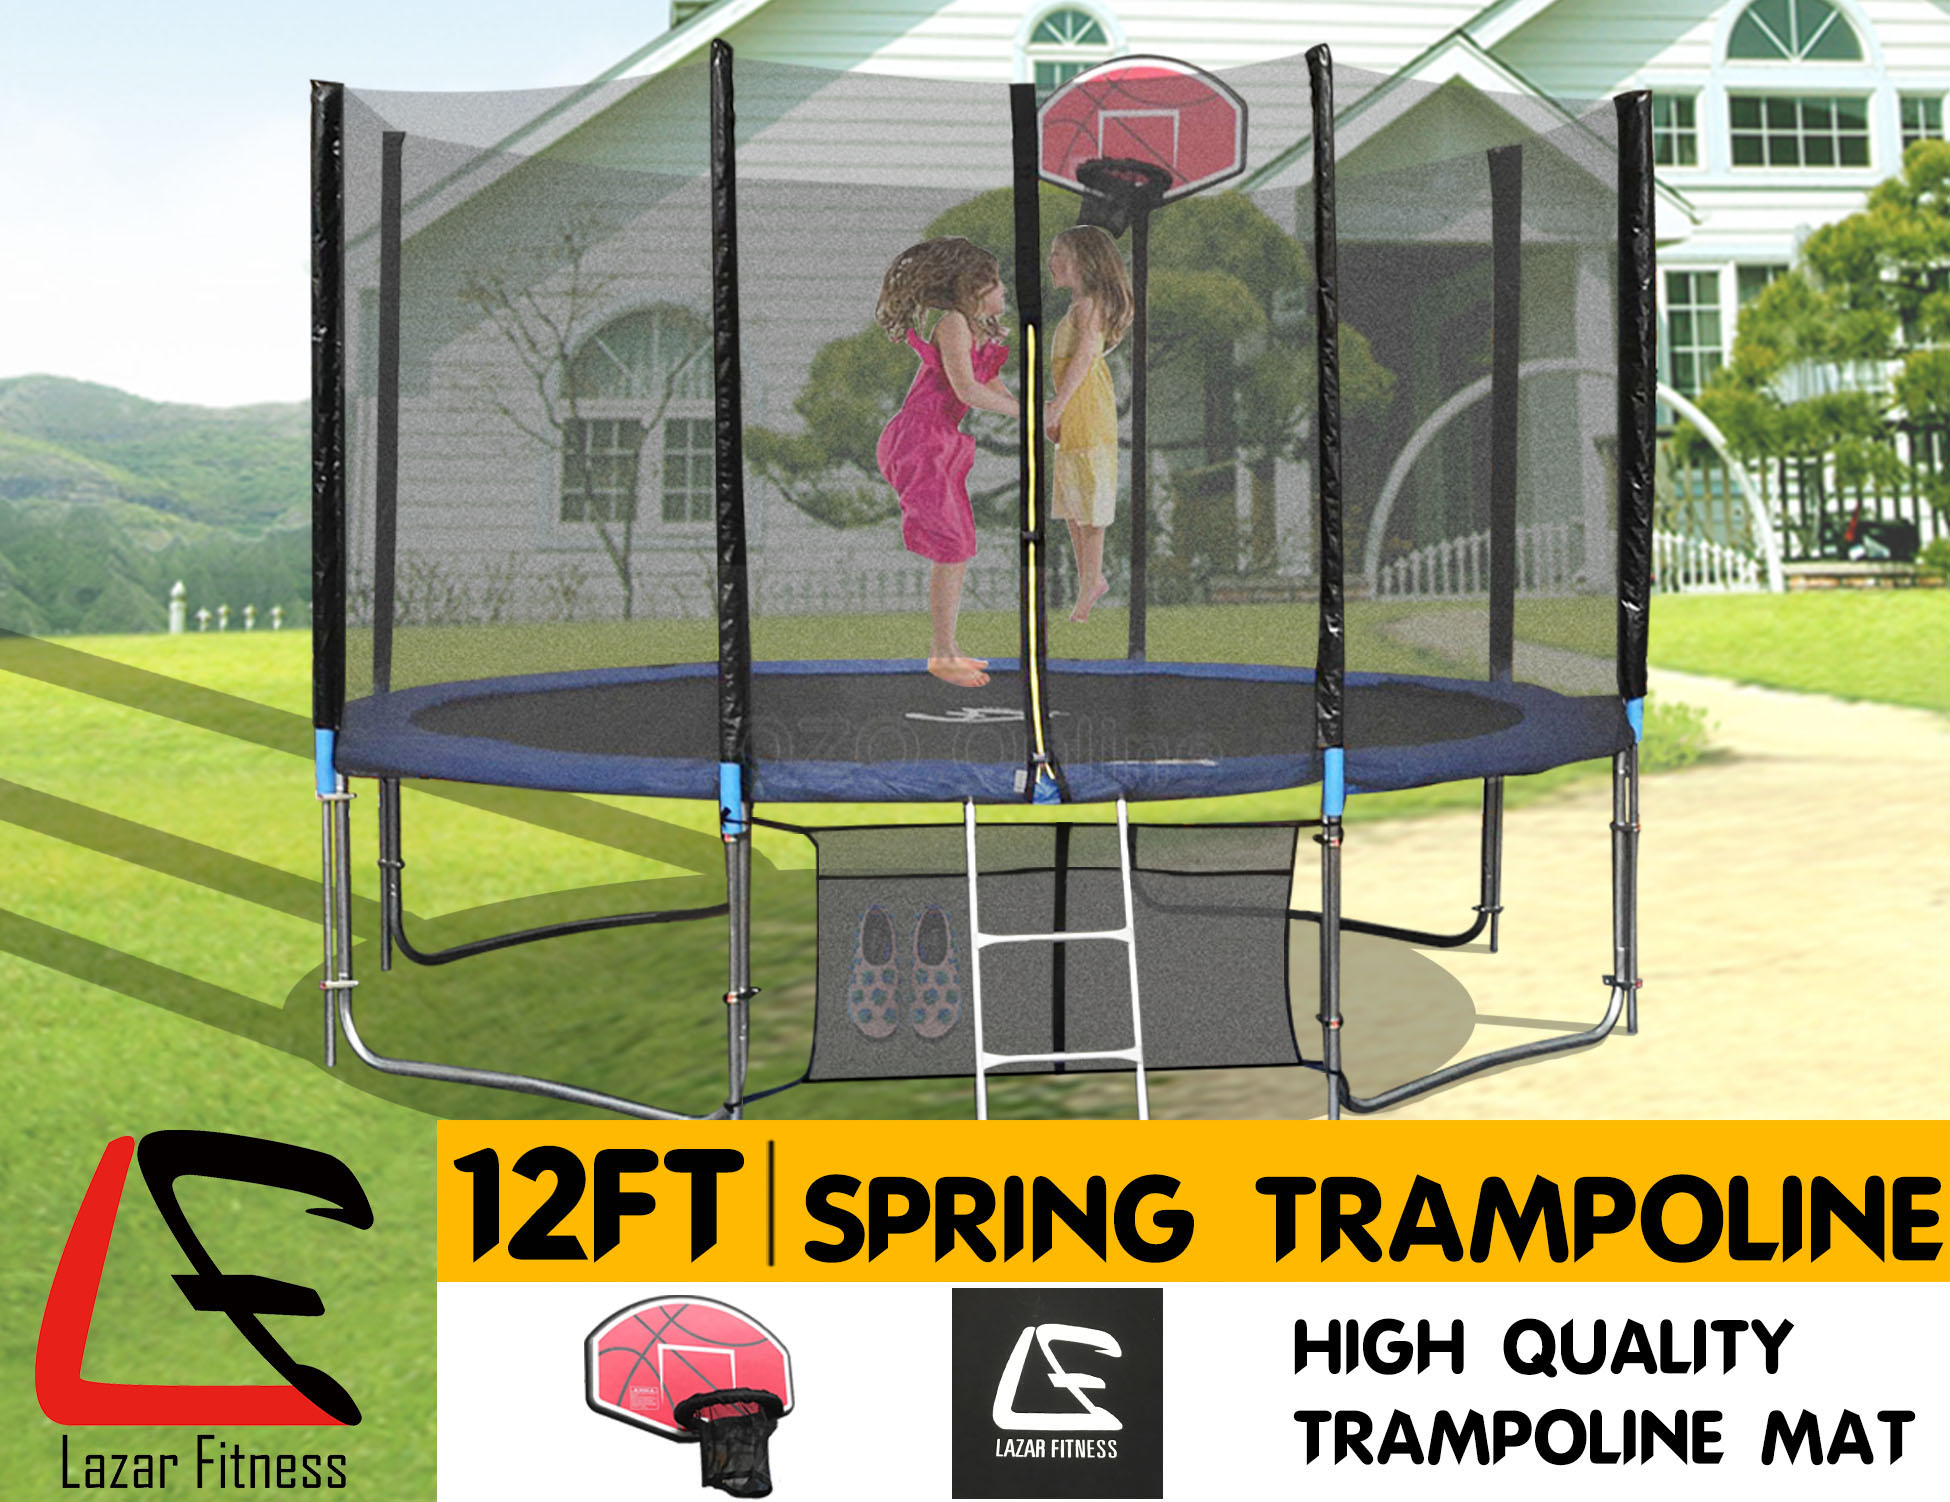 254 Lazar Finess 12ft Trampoline Basketball Set Safety